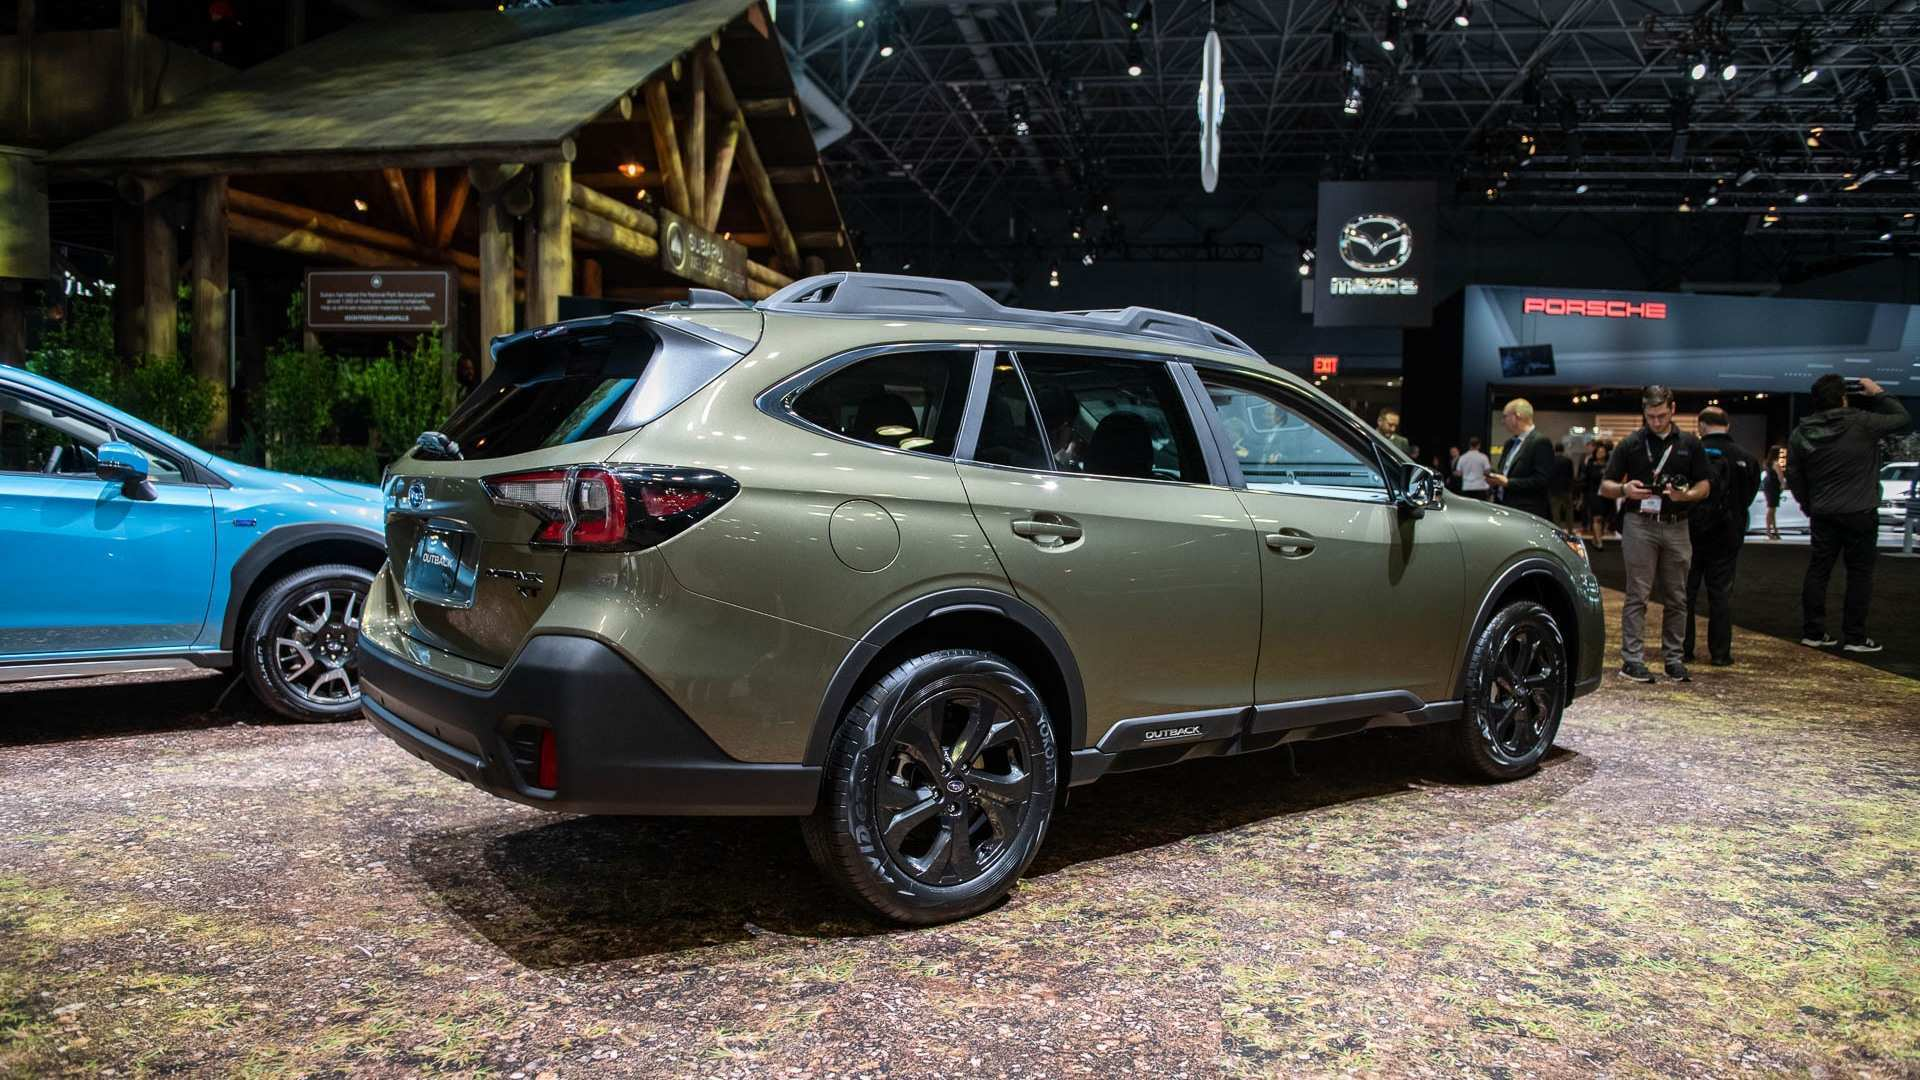 66 All New 2020 Subaru Outback Turbo Pricing